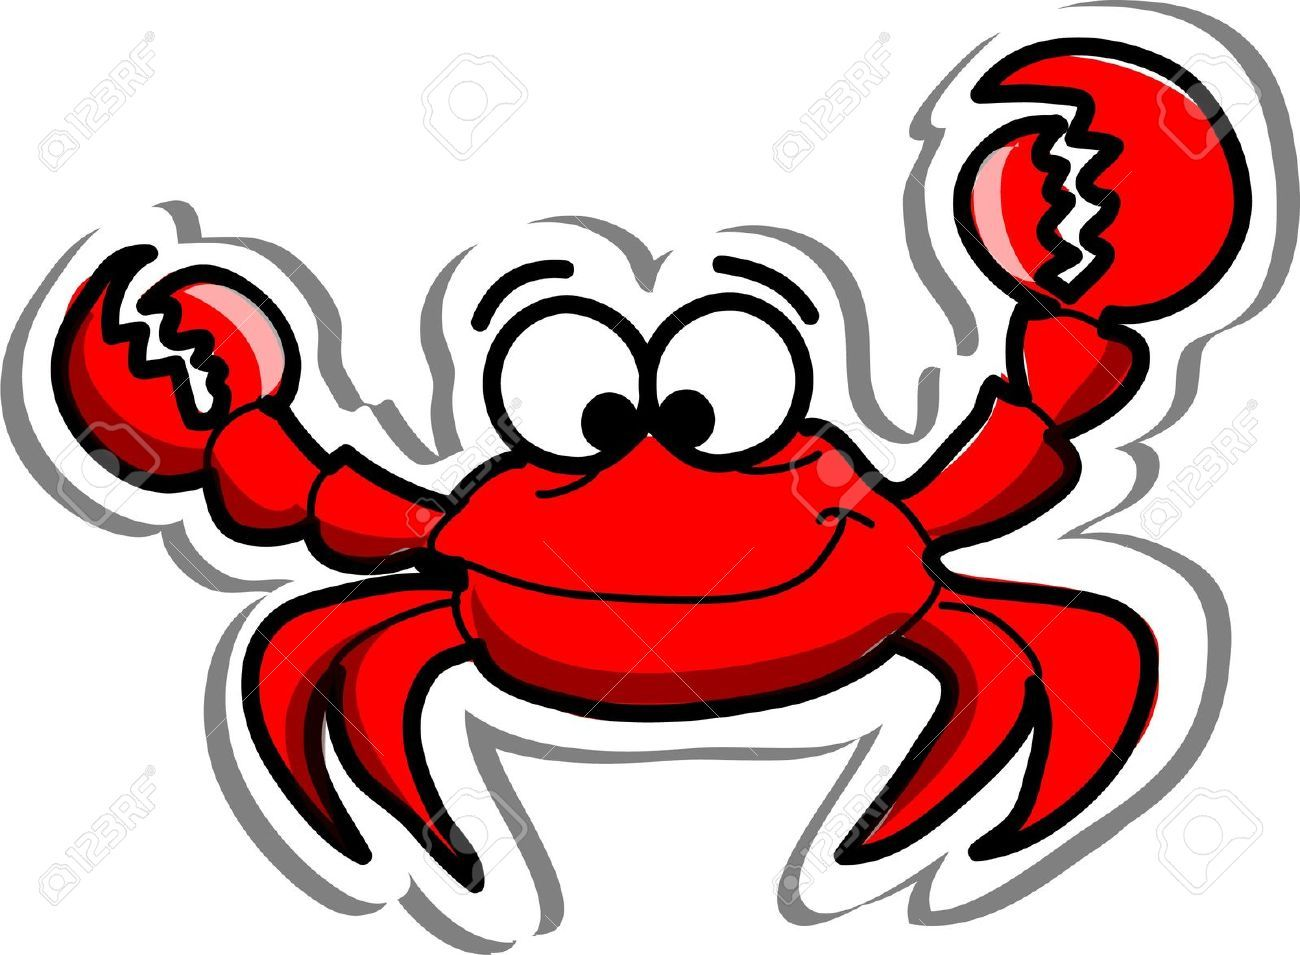 Crabs Stock Illustrations, Cliparts And Royalty Free Crabs